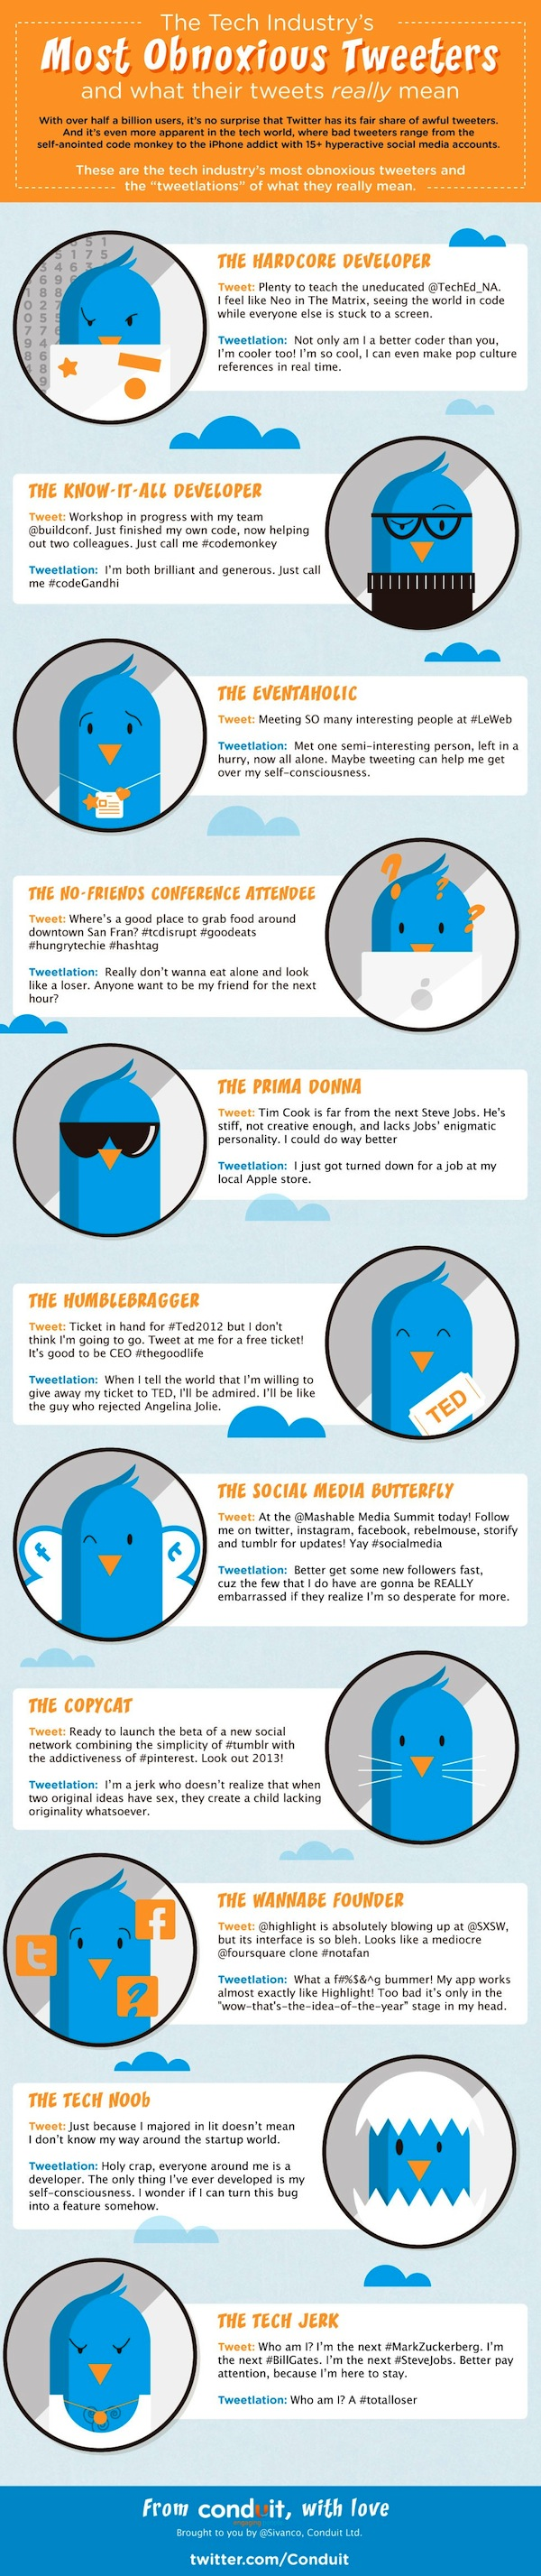 Most Annoying Tweeters of the Tech Industry